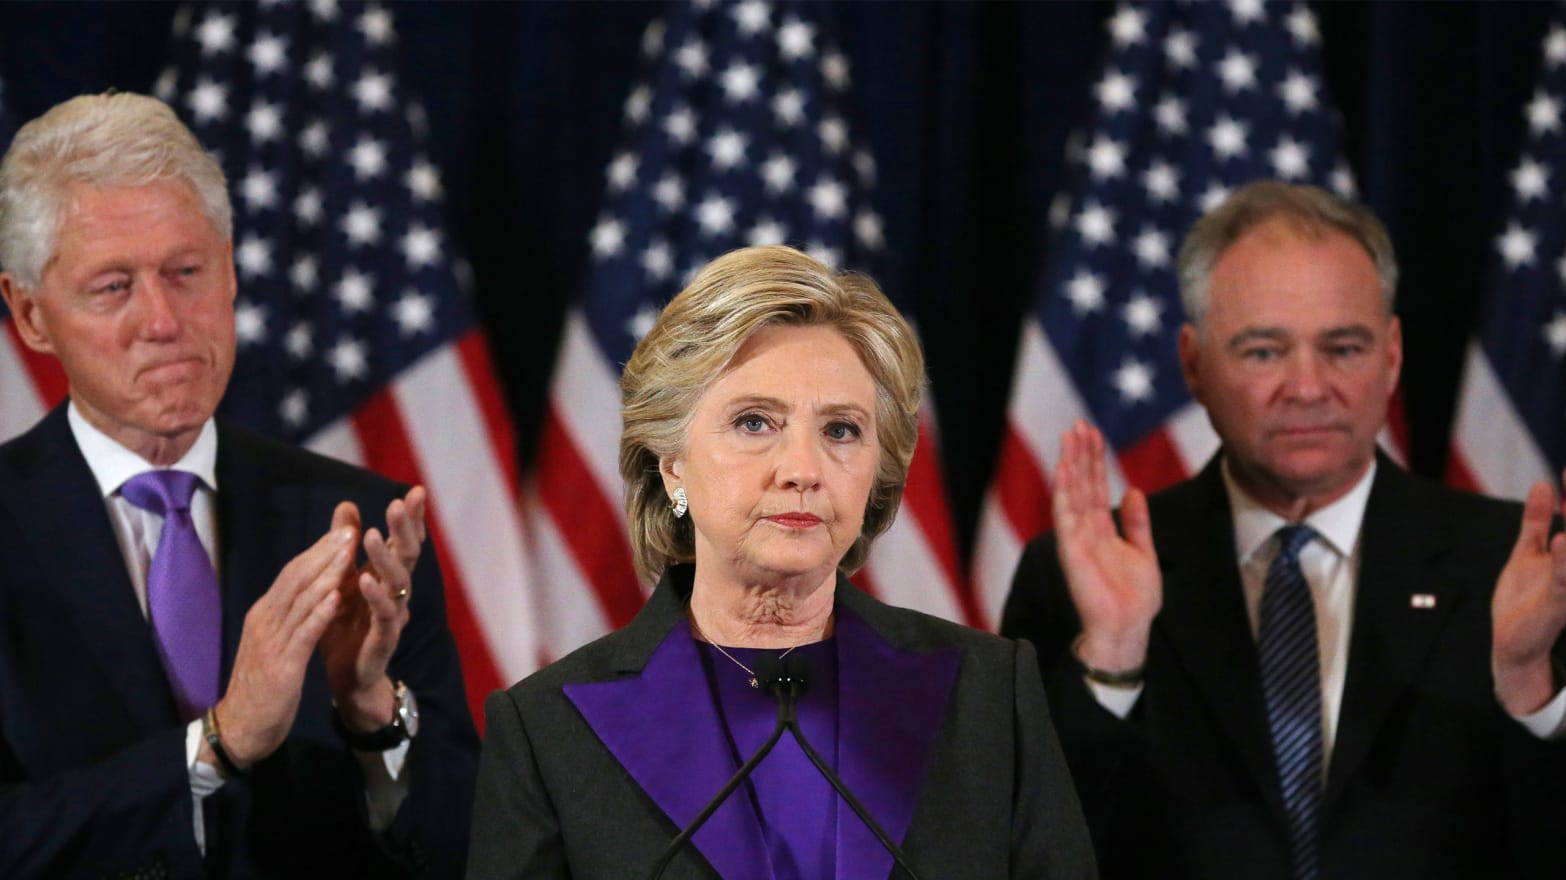 b406a64d Seven Reasons Why Hillary Clinton Lost and Donald Trump Won